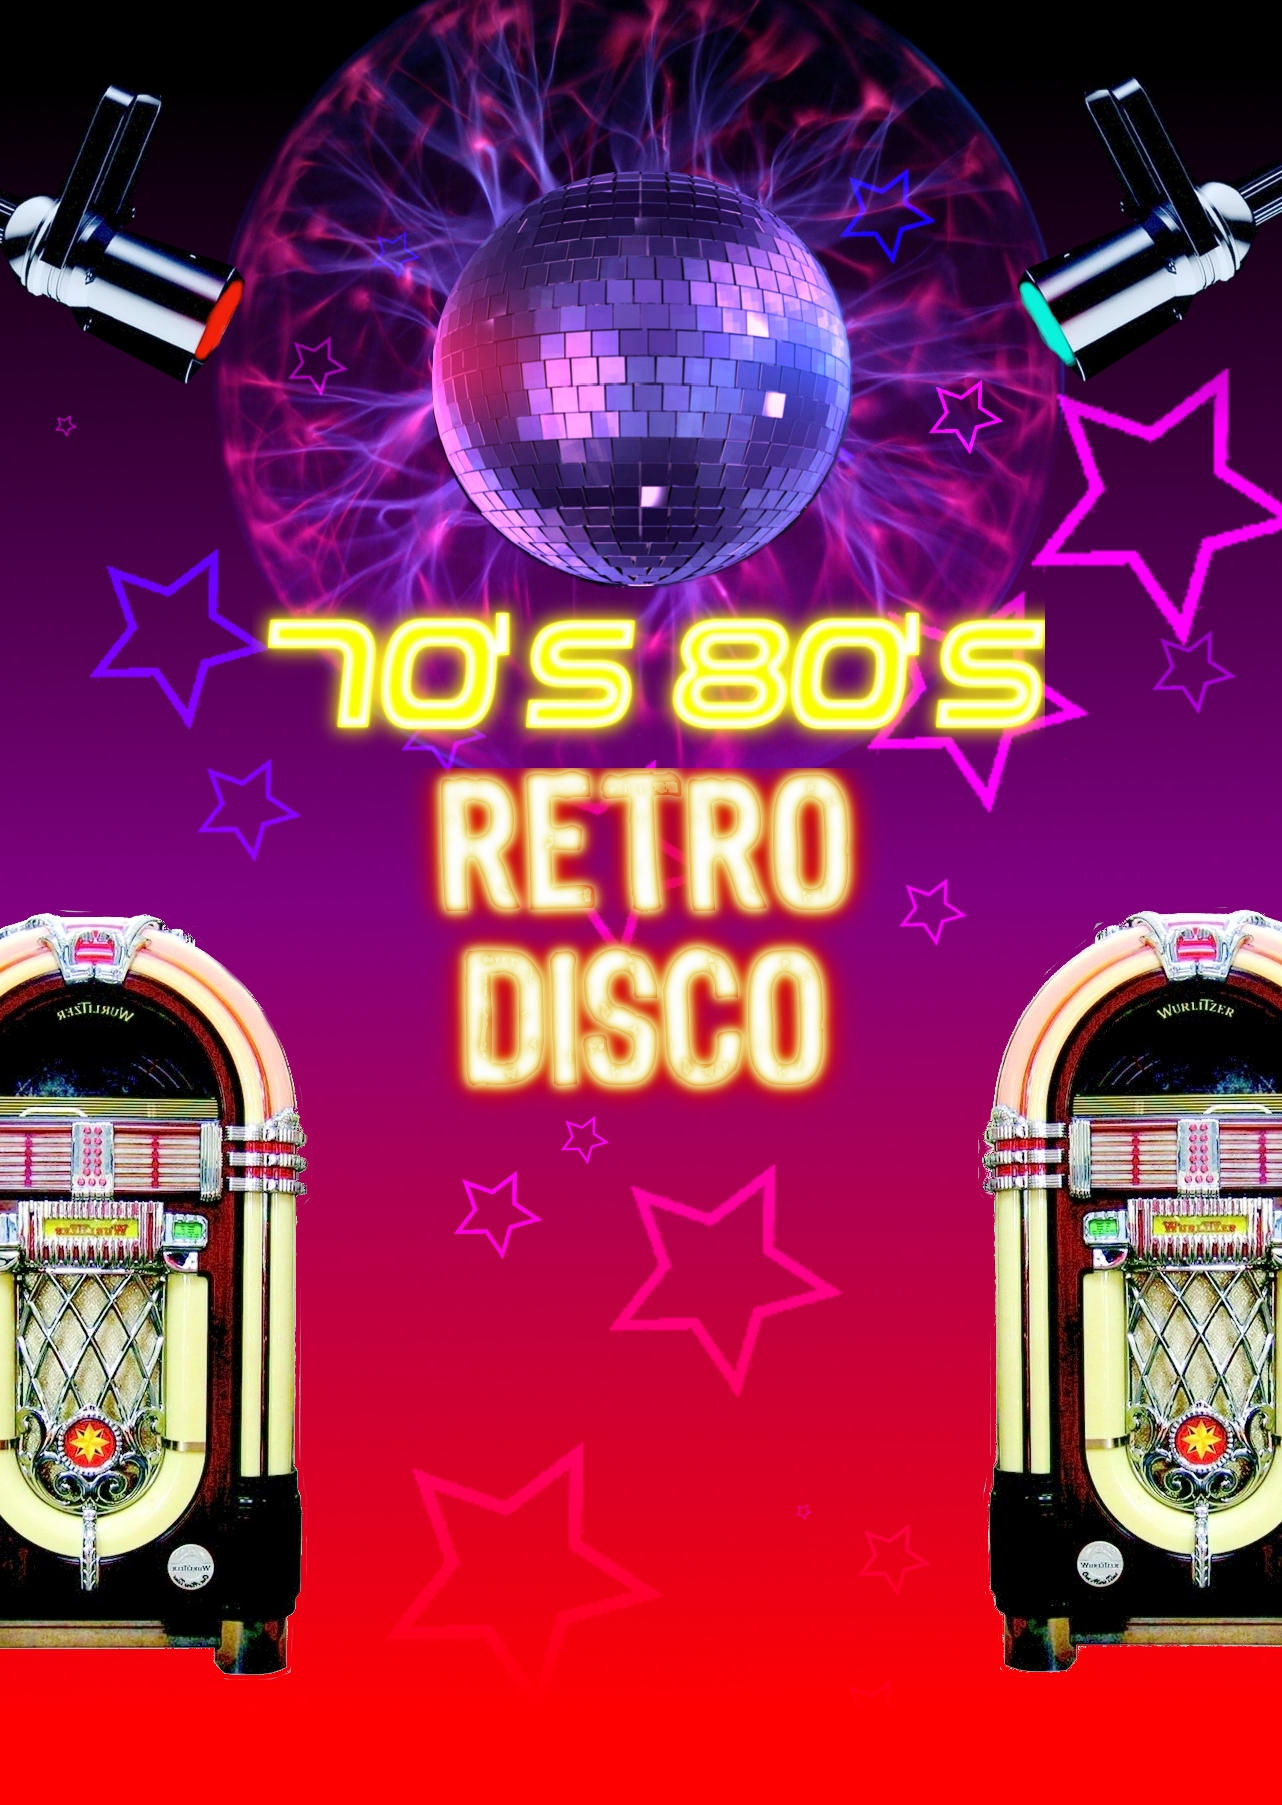 70s 80s Retro Disco By Damid